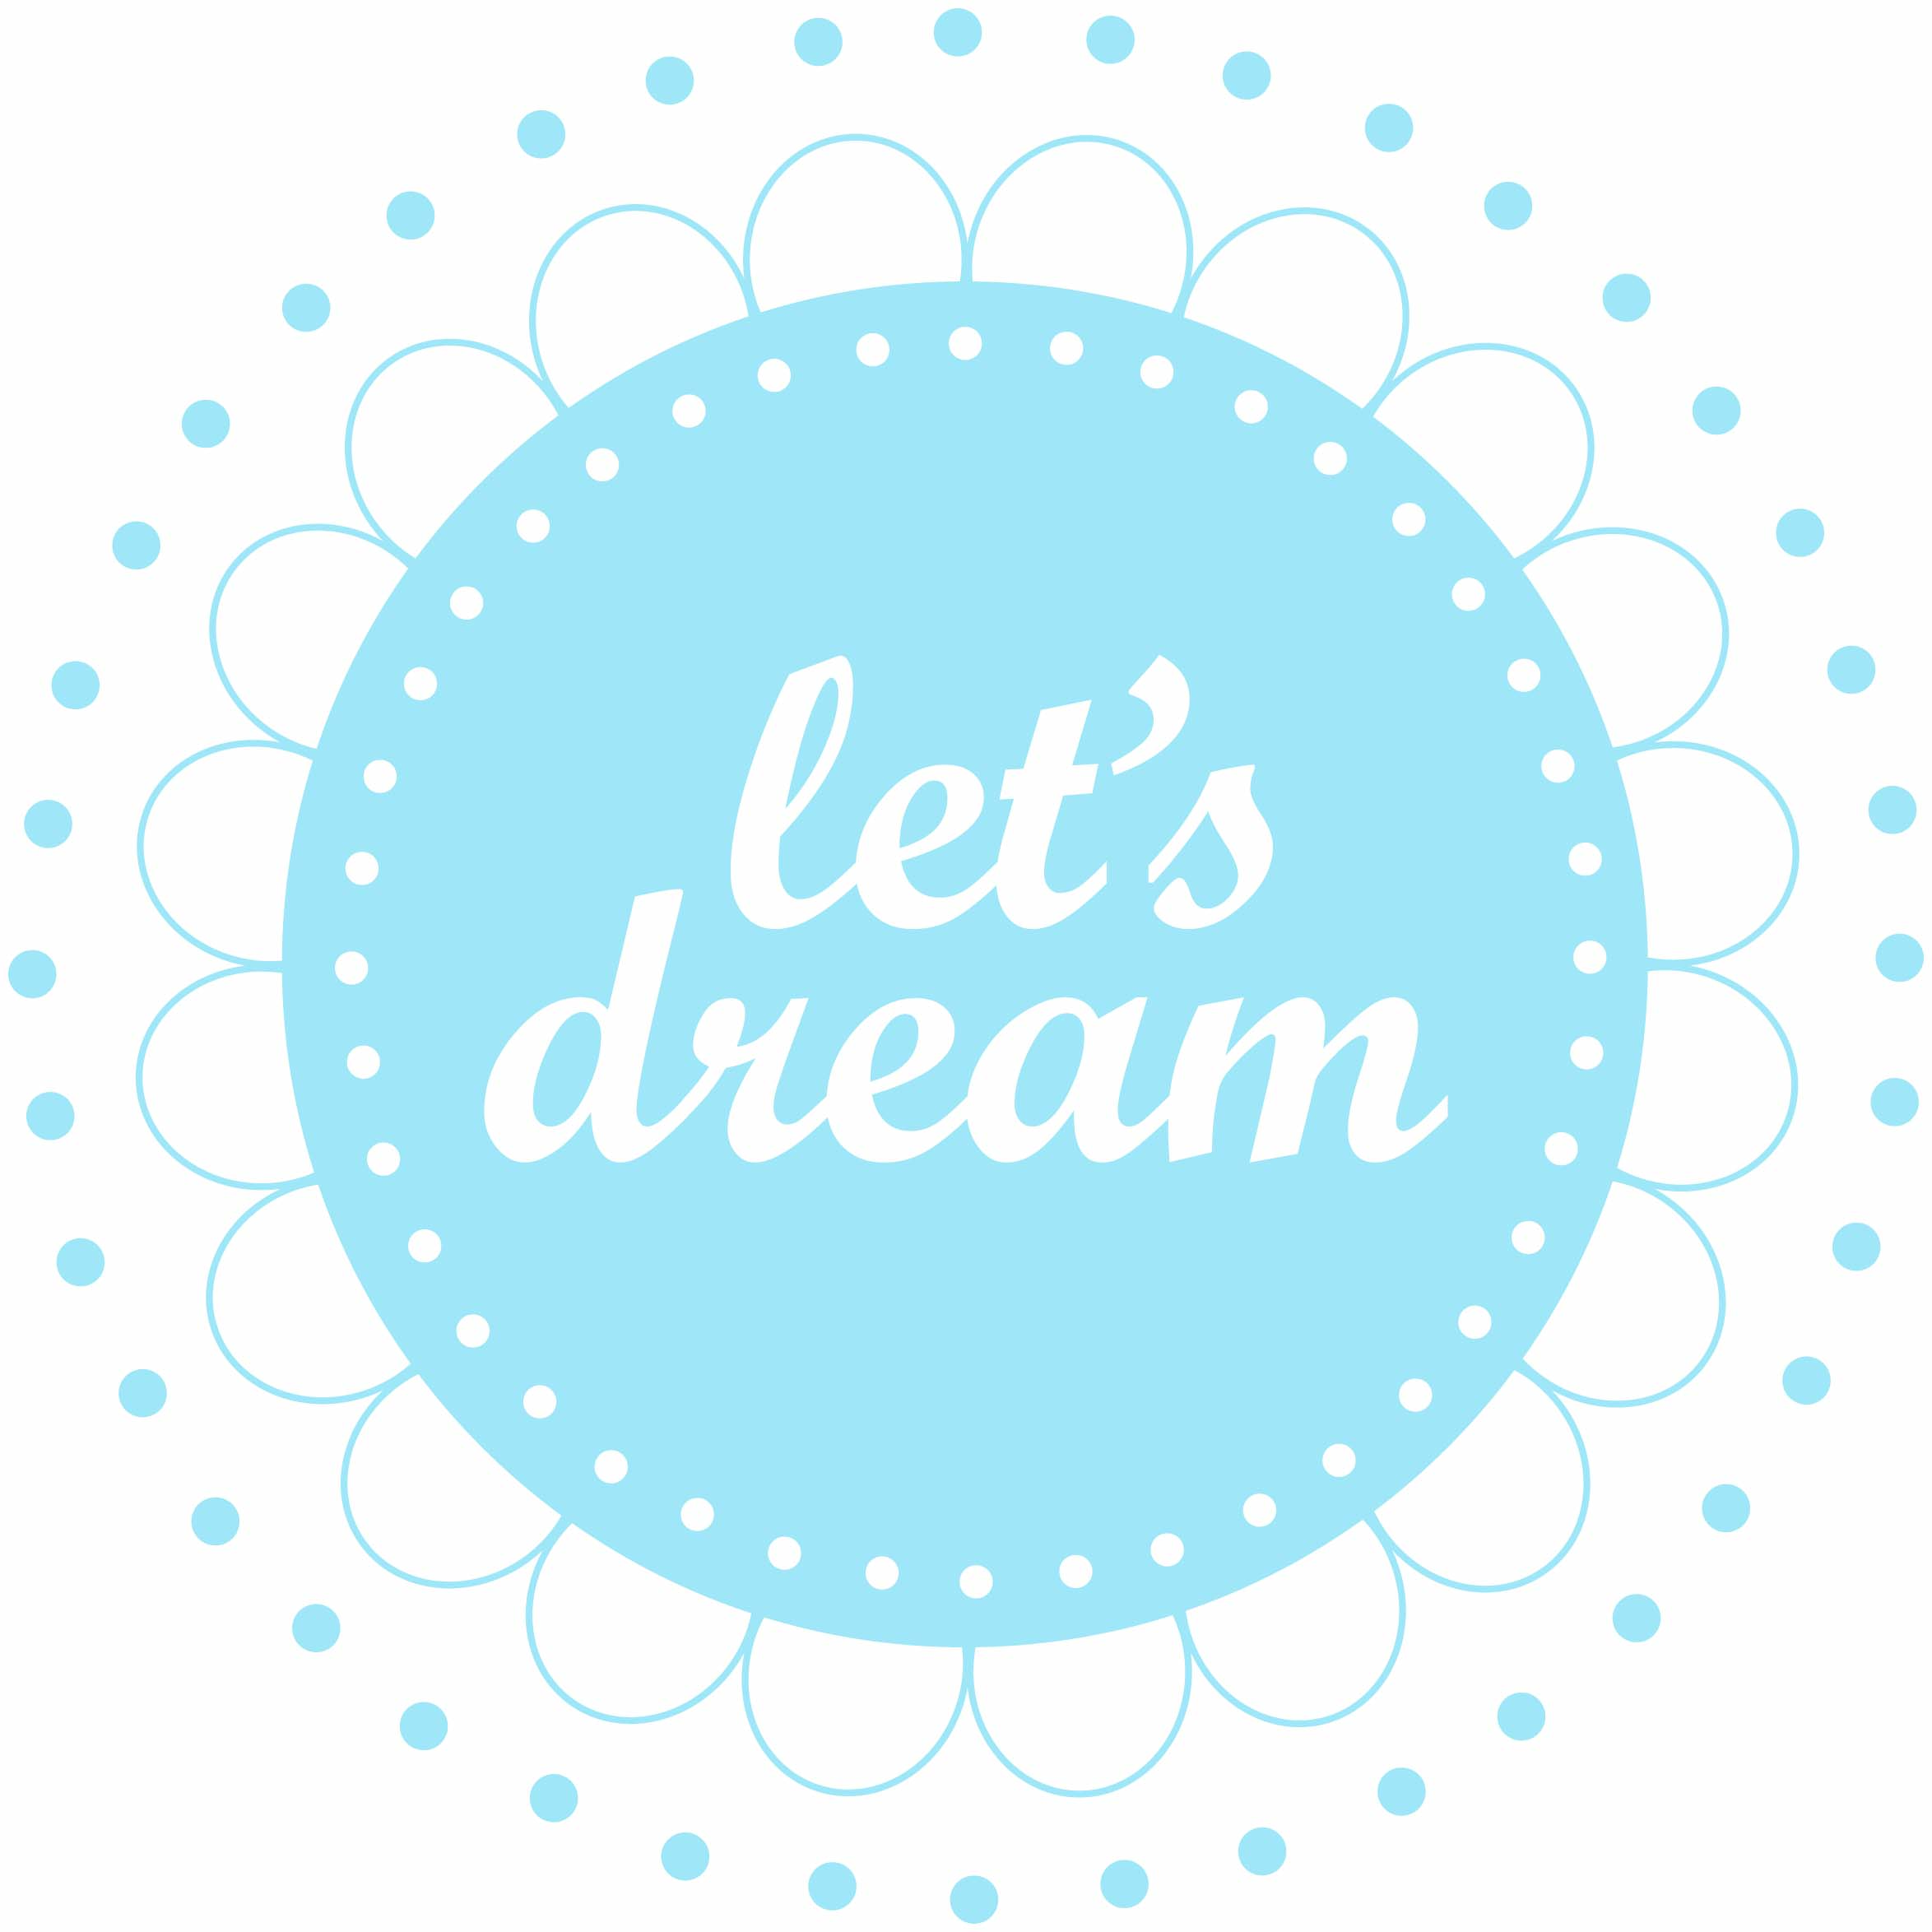 let's dream